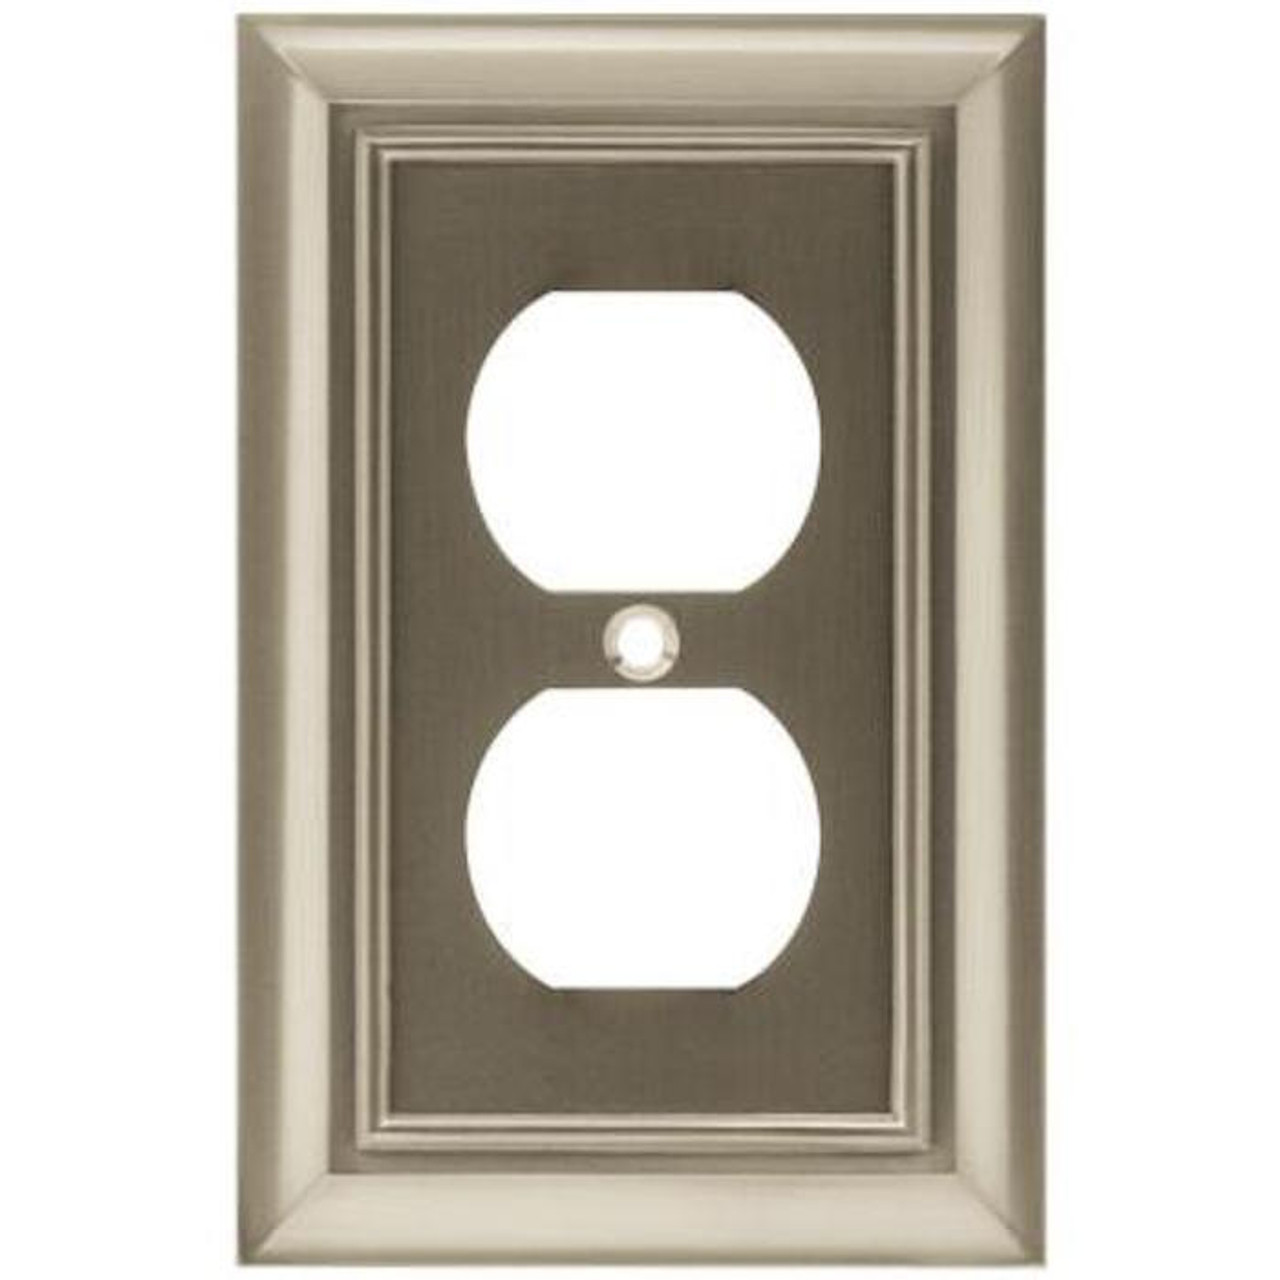 085-03-1055 Architect Single Duplex Outlet Cover Plate Satin Nickel